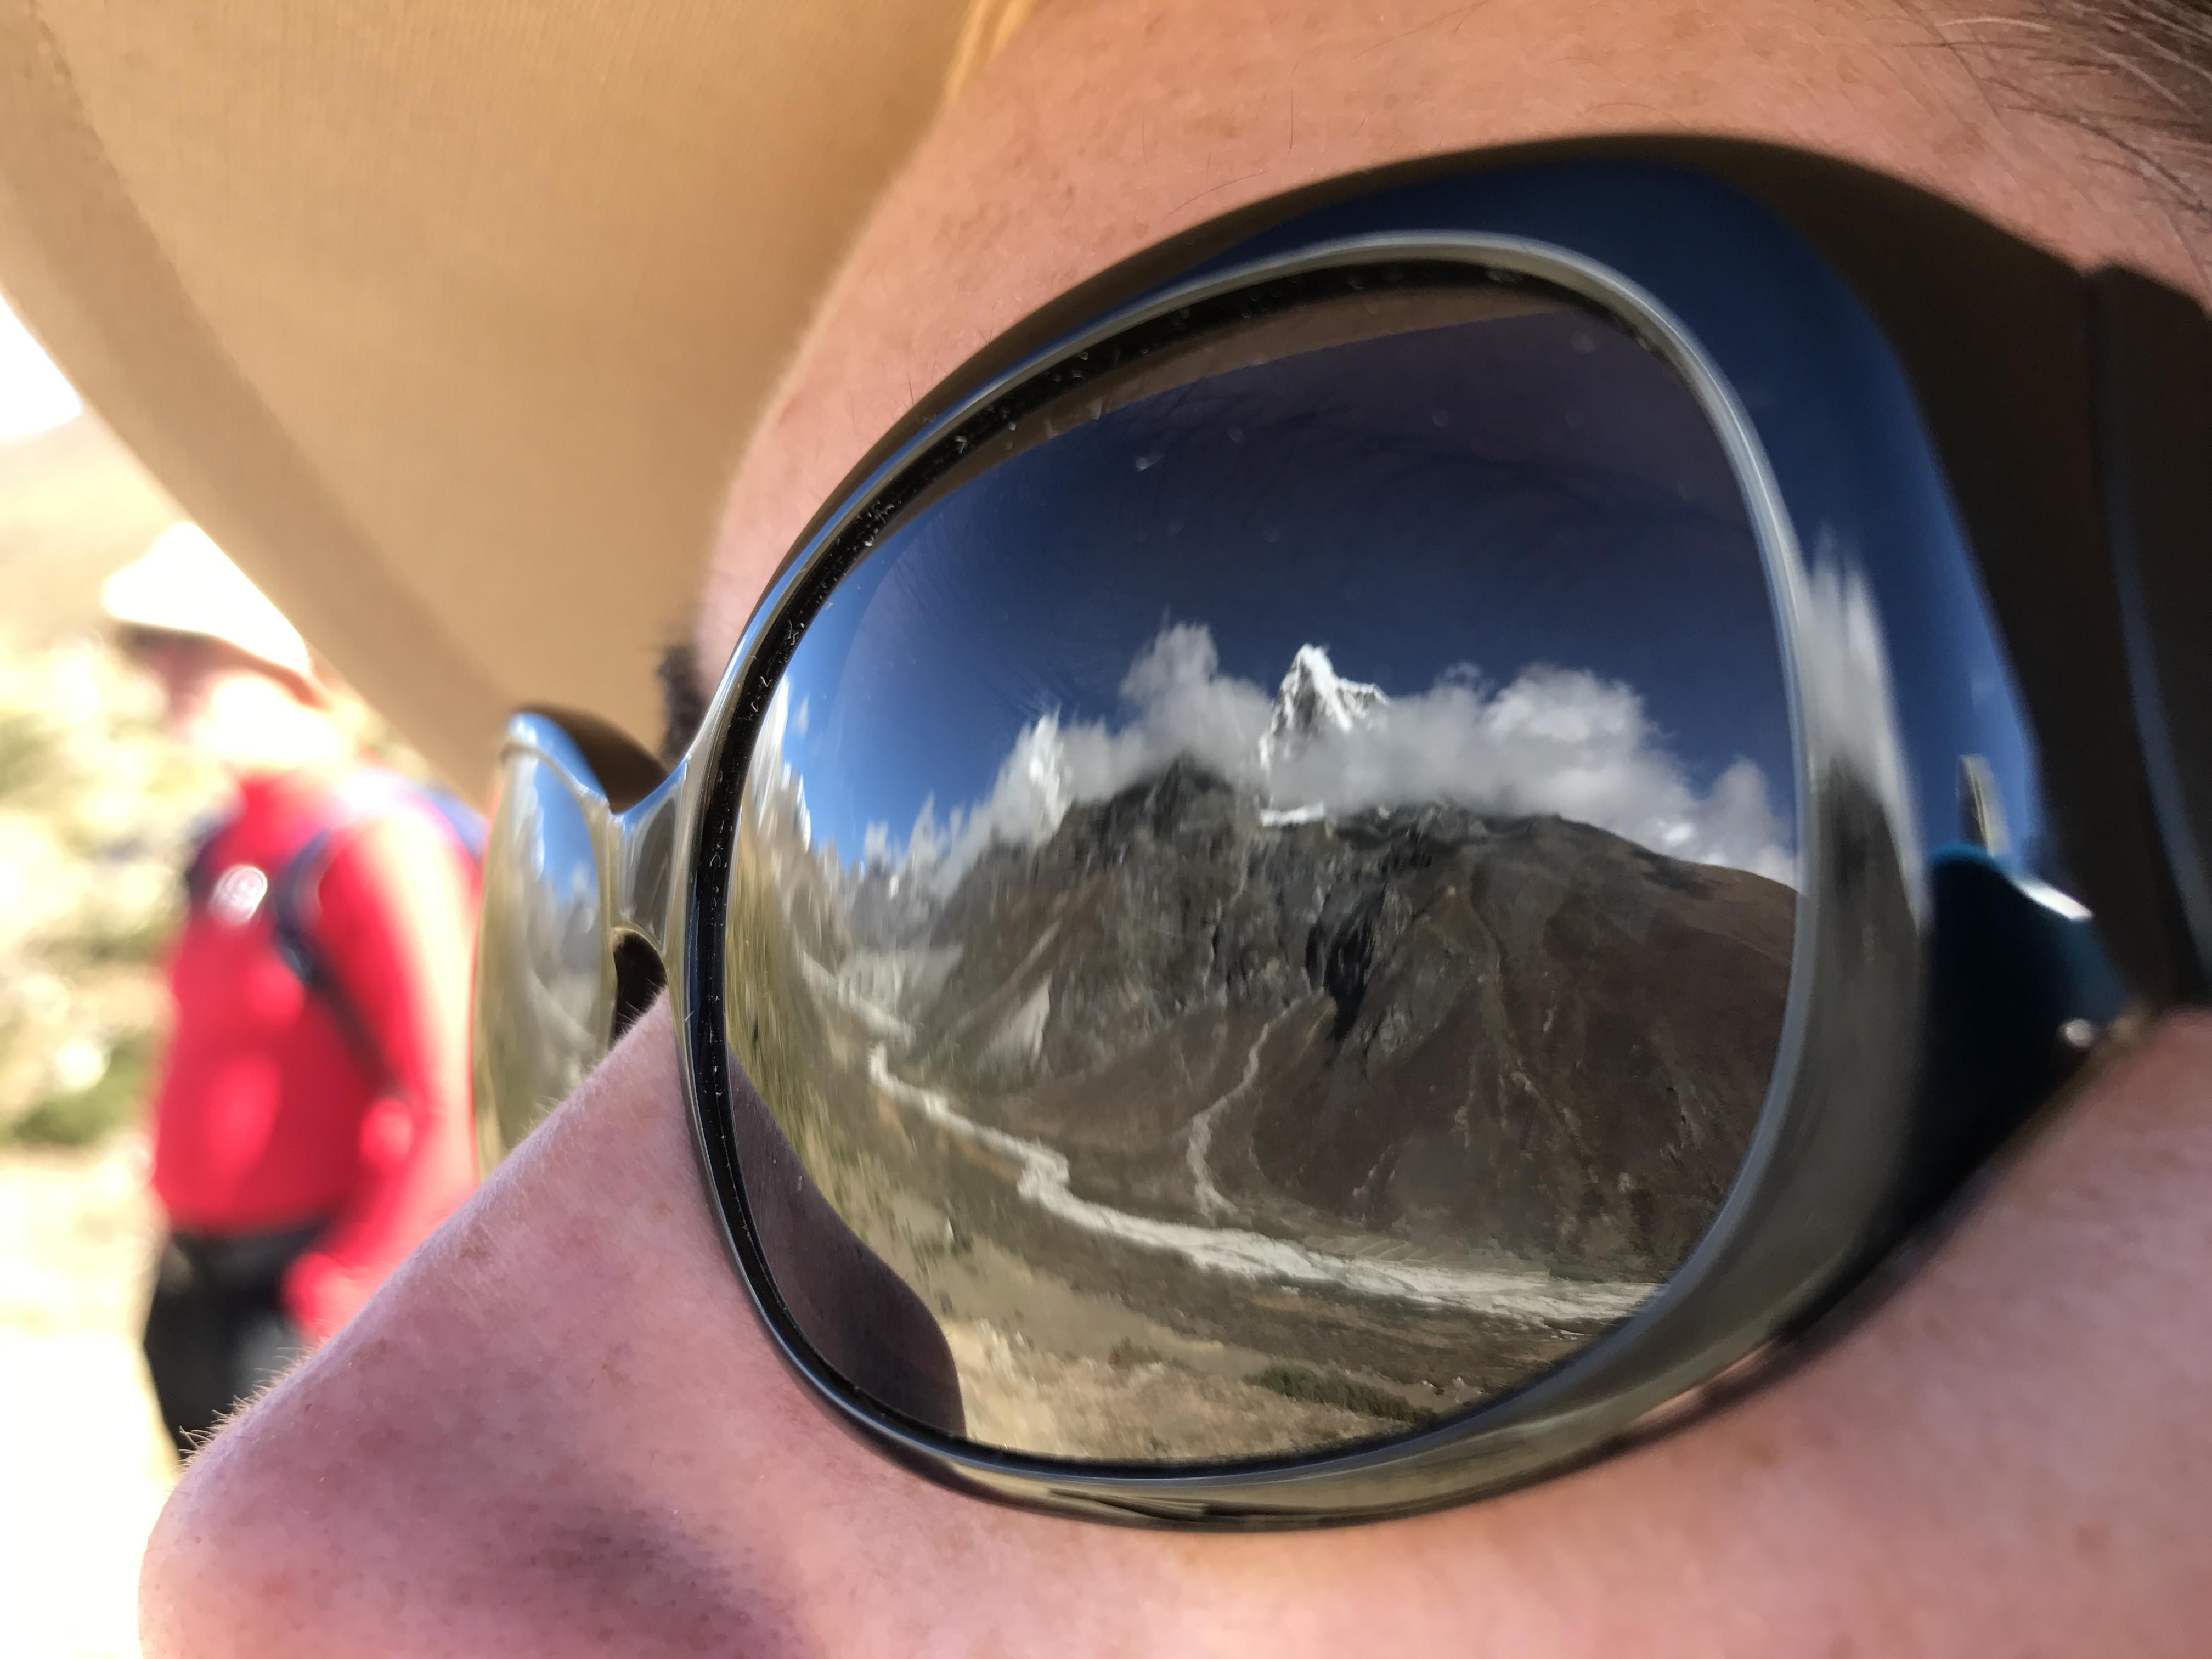 Mountain reflection in sunglasses